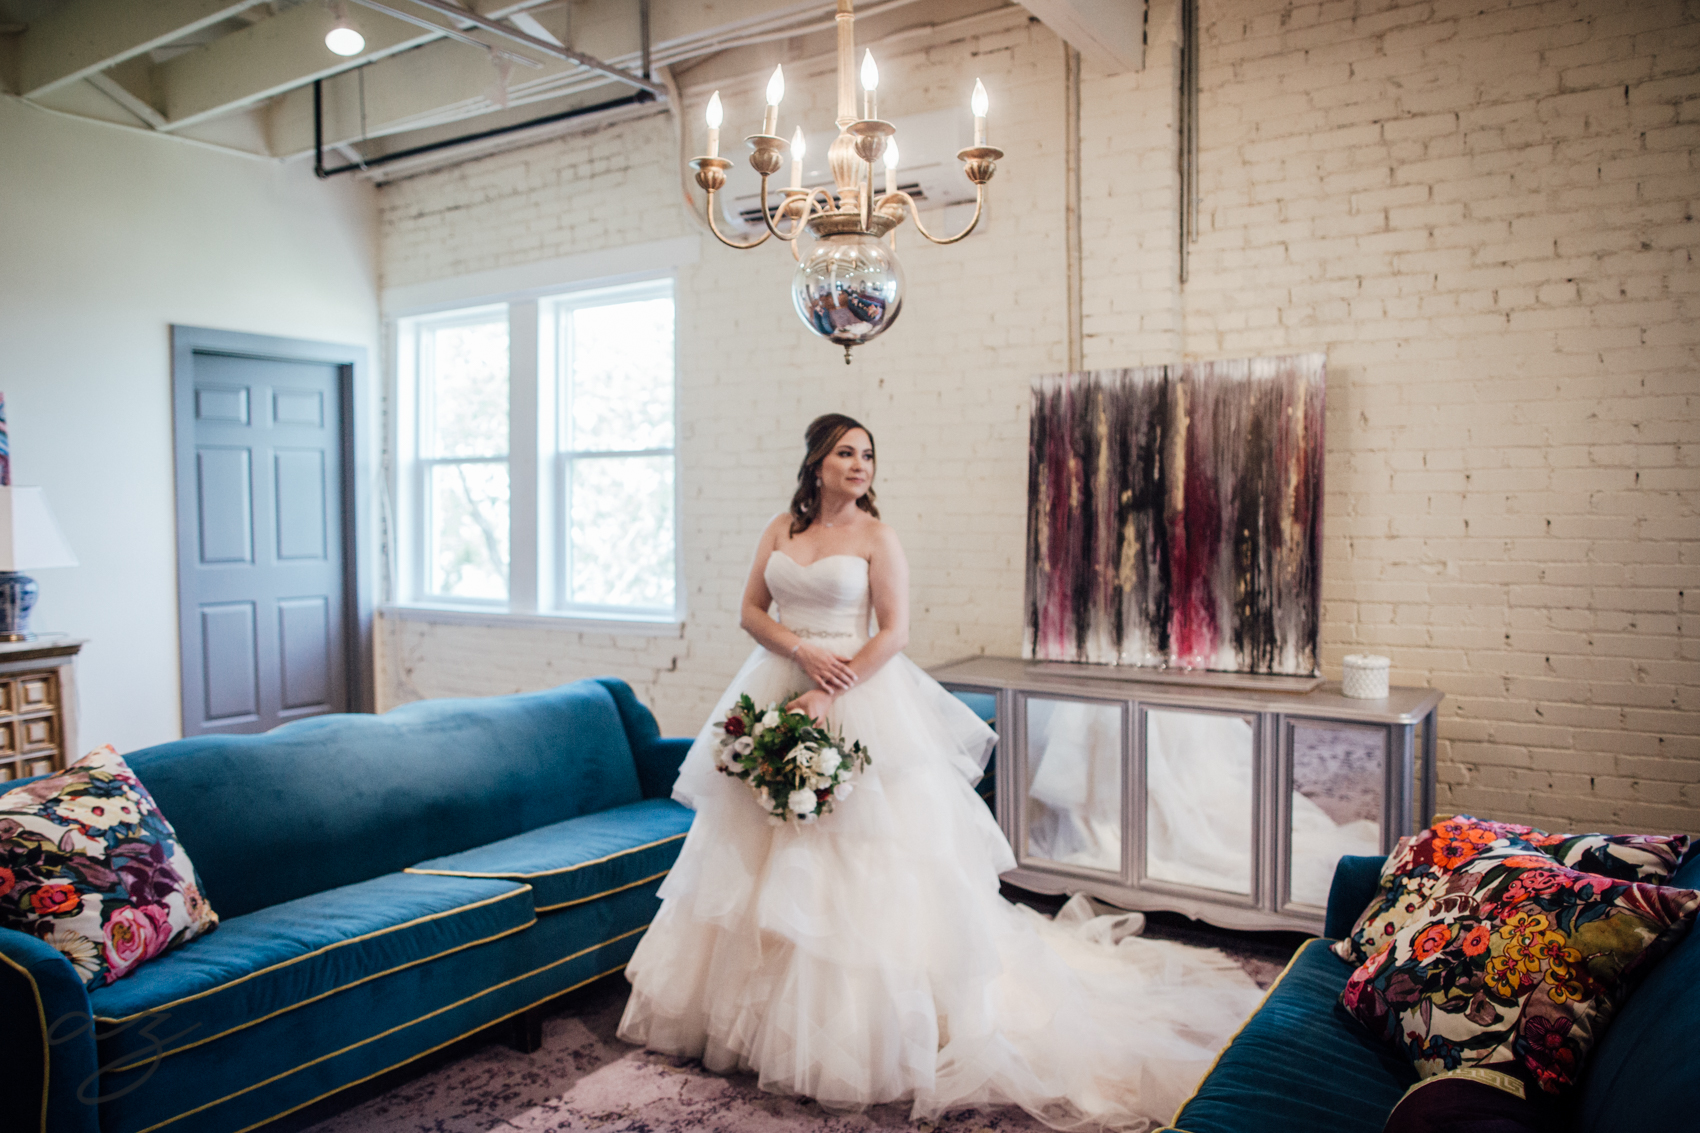 brik-venue-bridal-session-photography-2